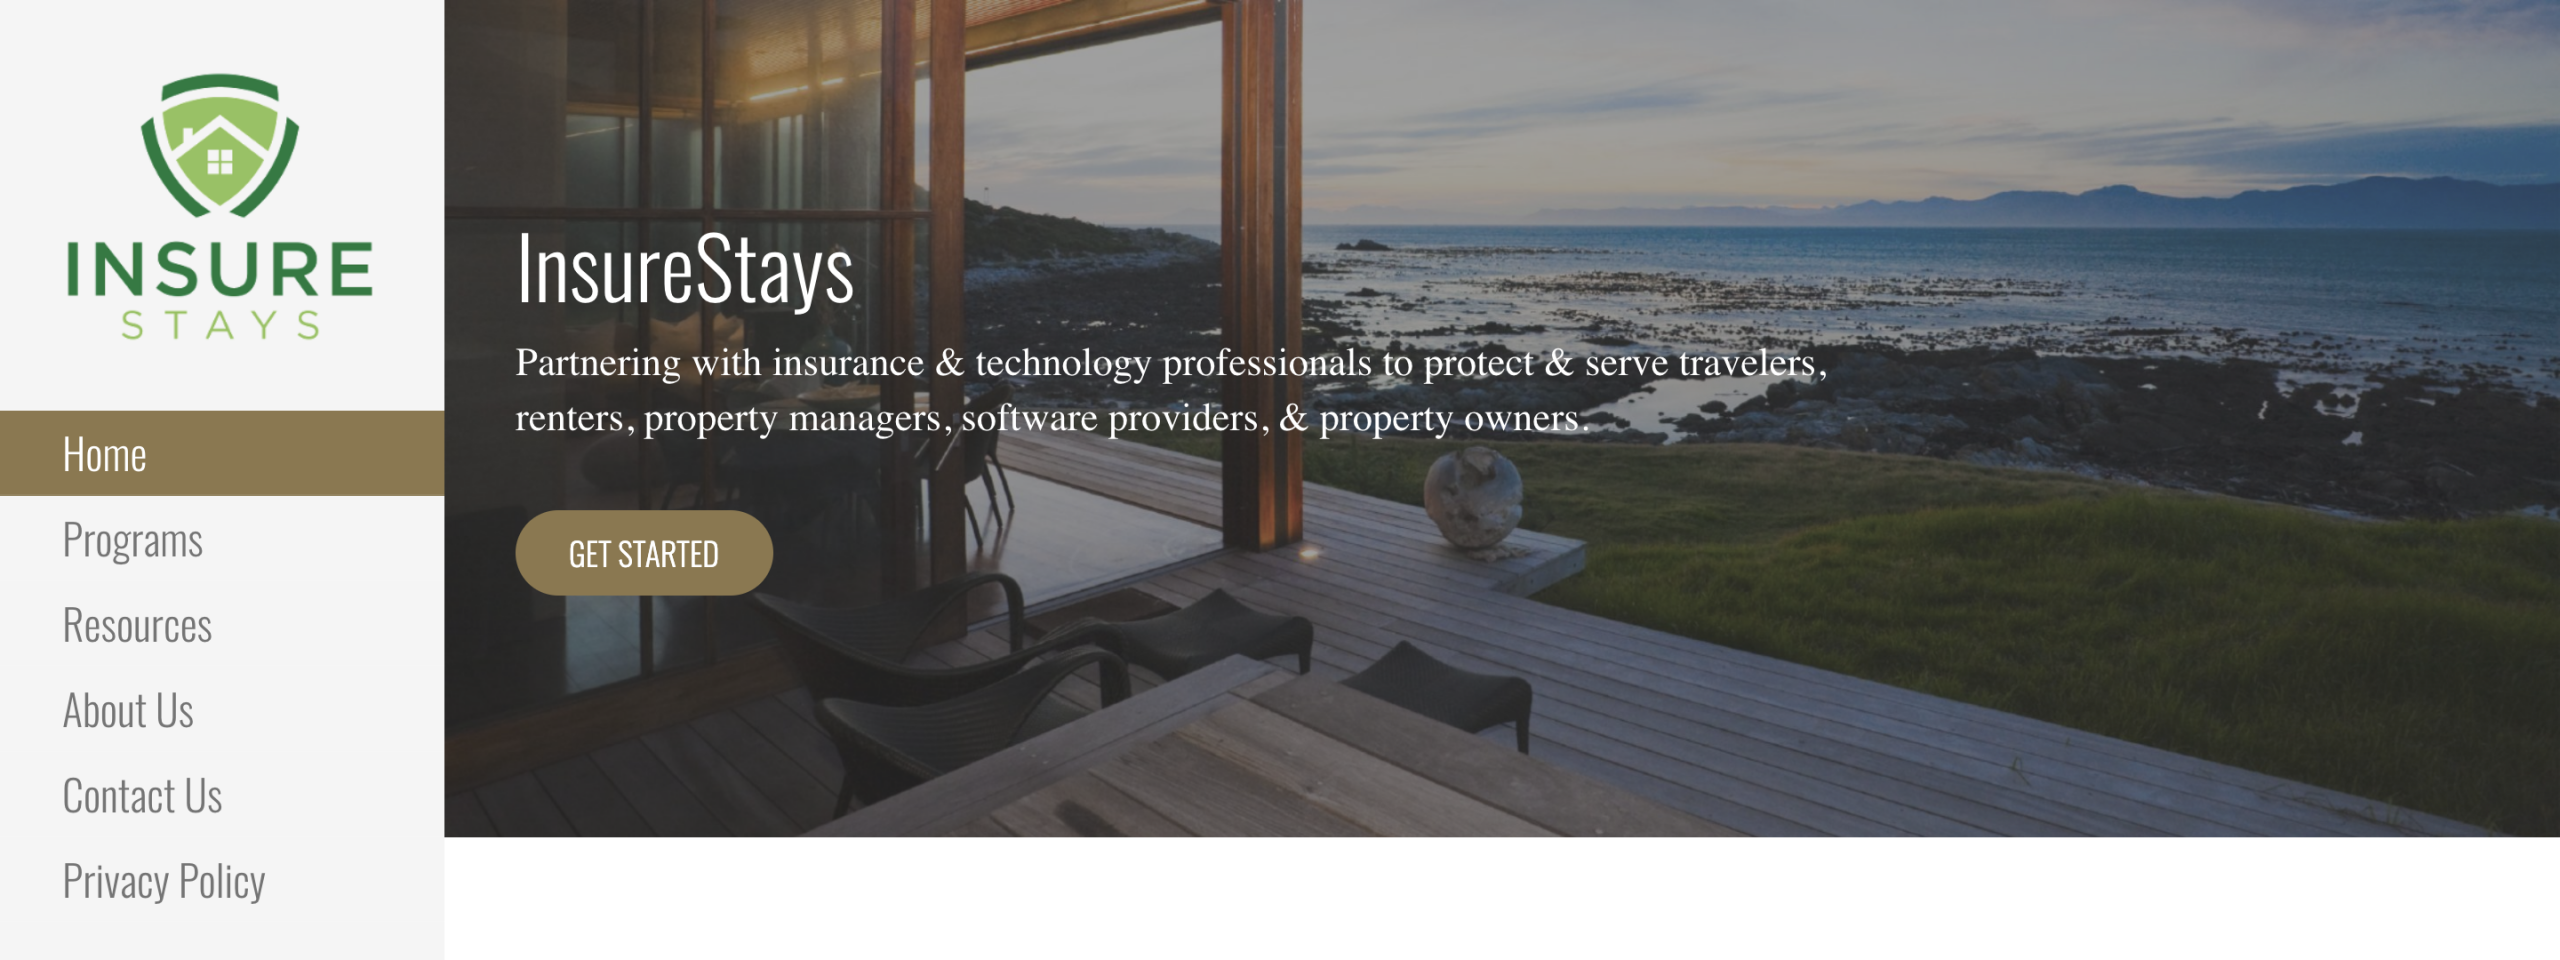 InsureStays is an example of a vacation rental insurance